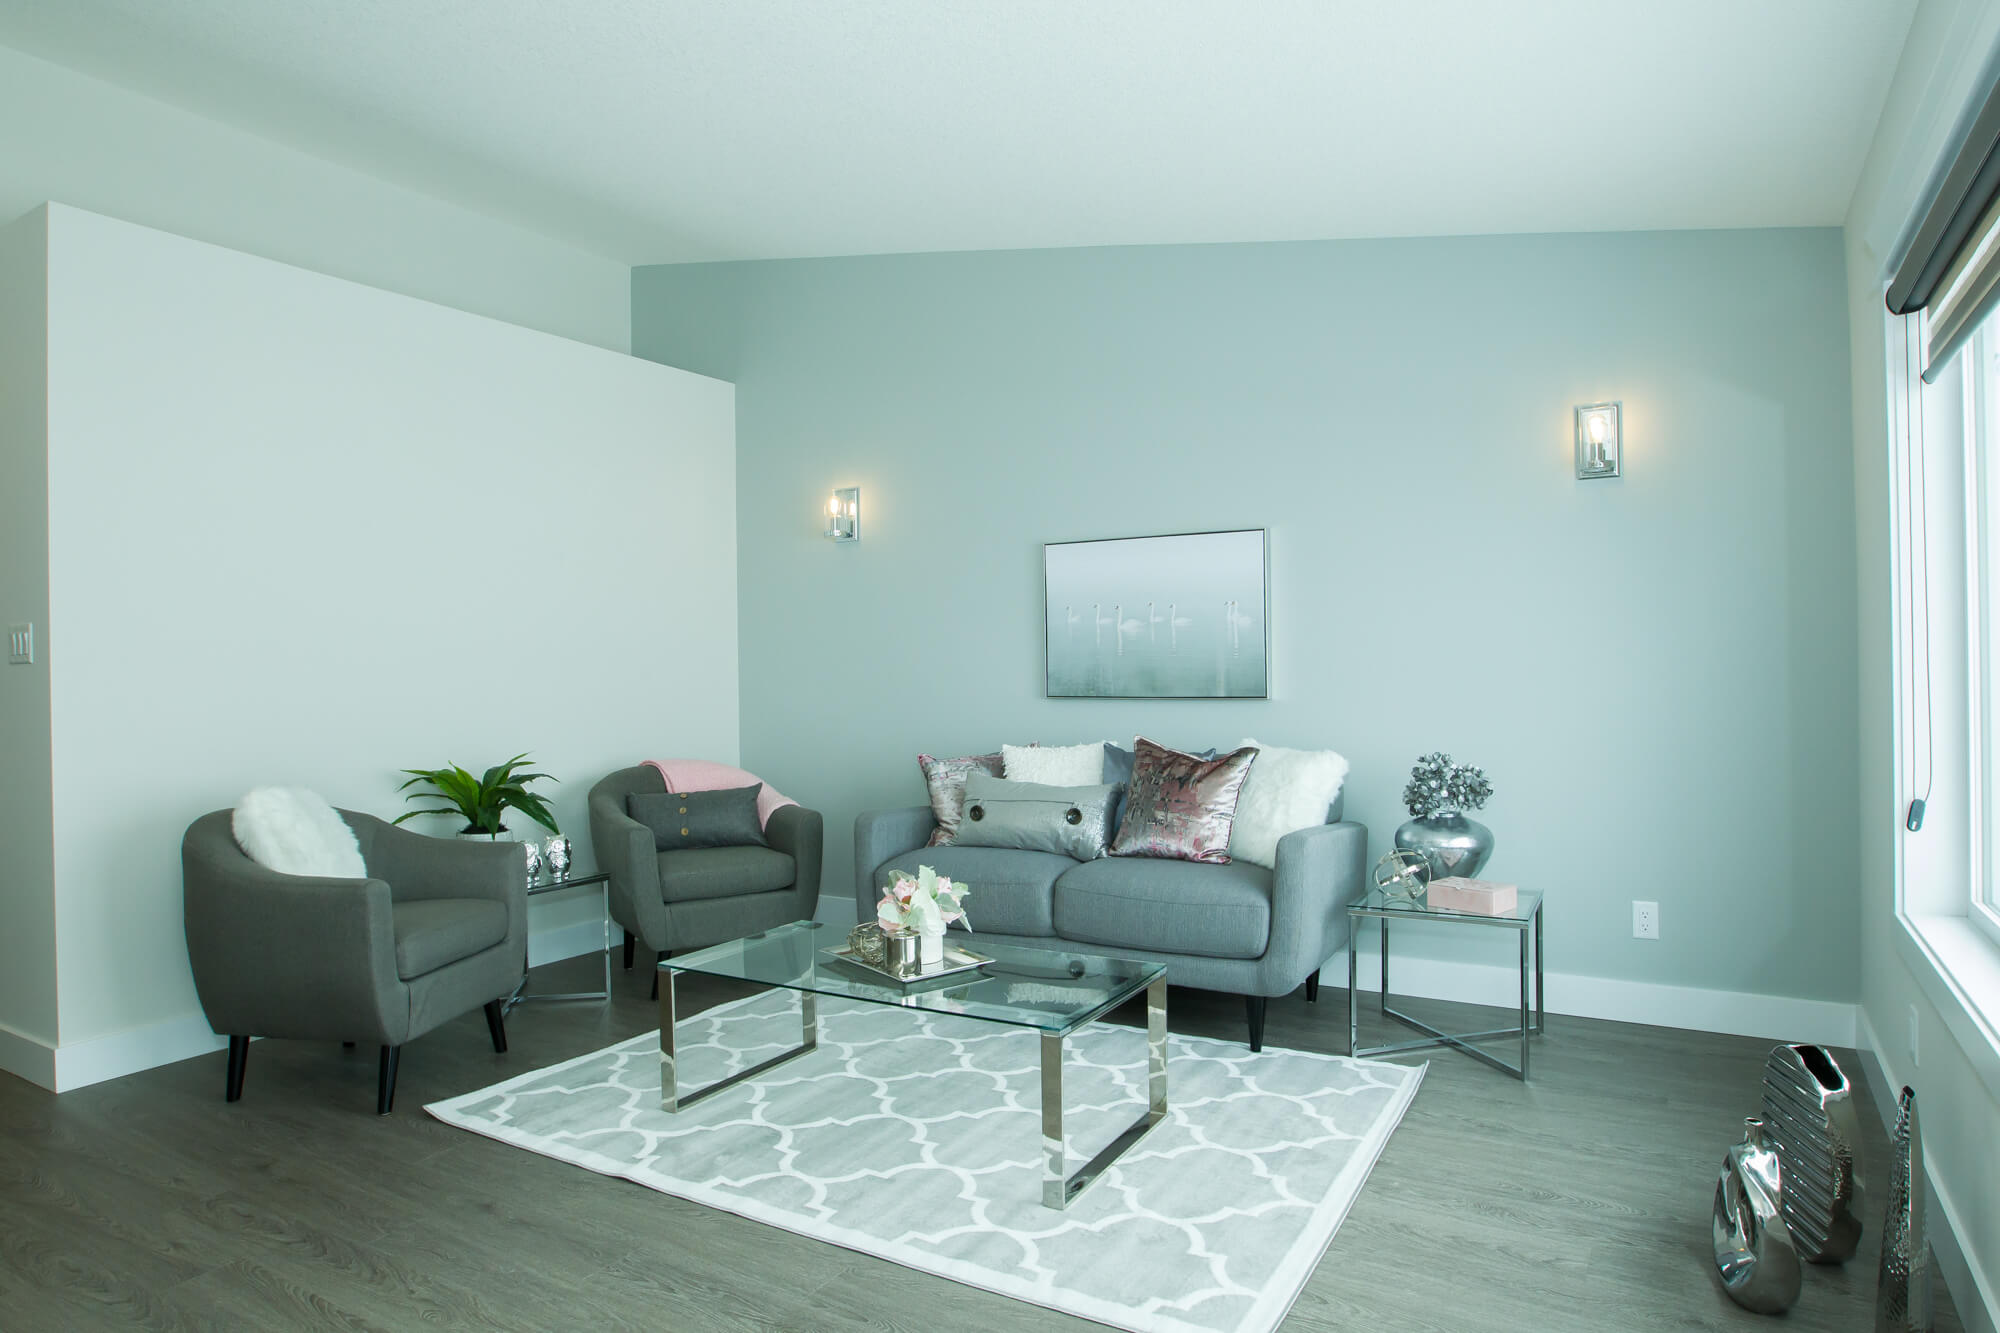 A Healthy Home with a Spacious Living Room